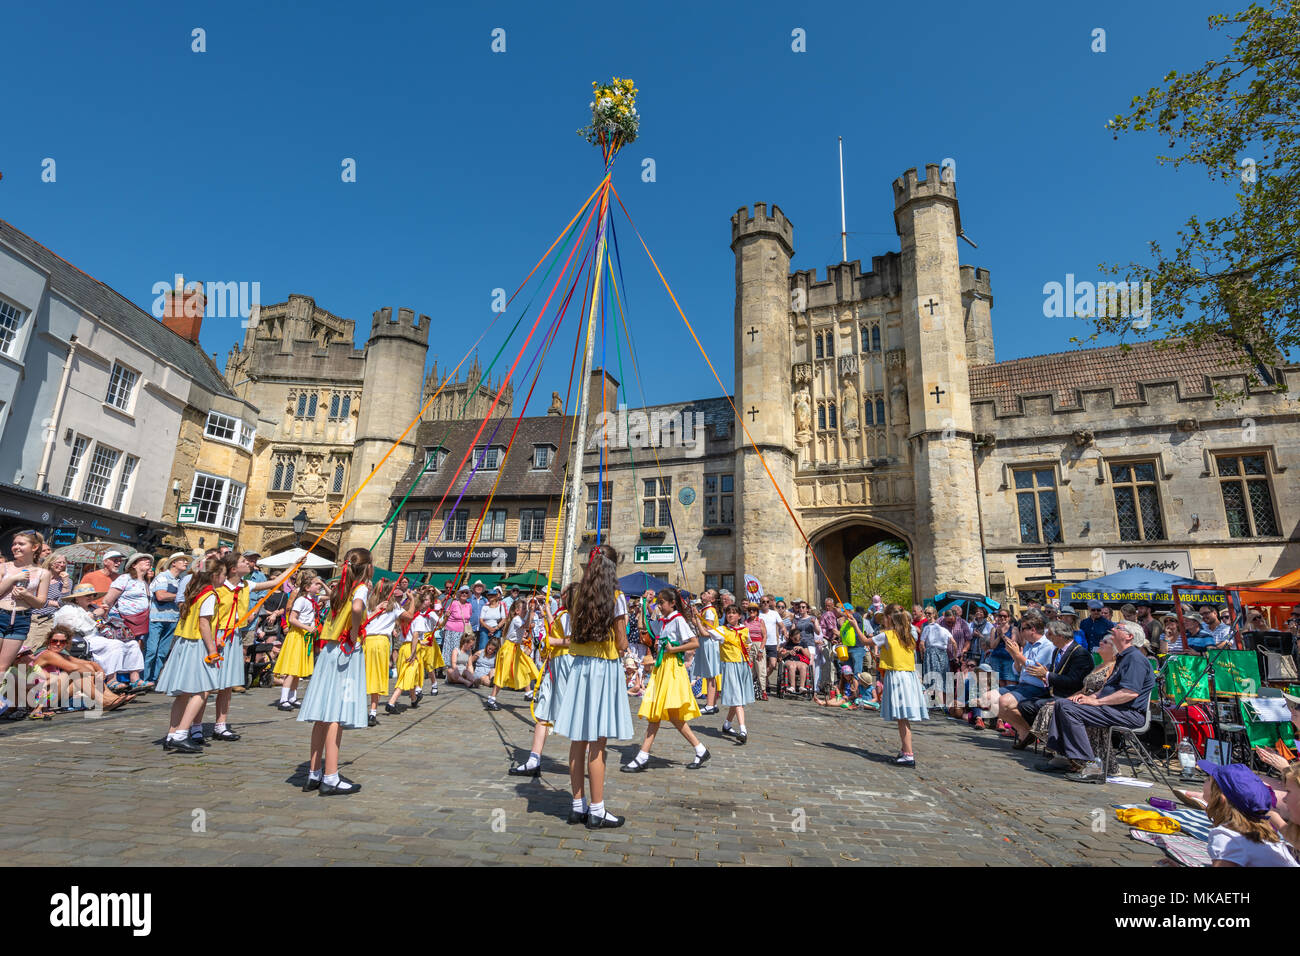 Wells, Somerset, UK. 7th May, 2018. UK Weather - On a beautiful sunny Bank Holiday Monday in Somerset, the pupils of St. Joseph and St. Theresa and Stowberry Park Primary Schools entertain a large crowd with Maypole Dancing to welcome the start of summer in Wells City Market Place. Credit: Terry Mathews/Alamy Live News - Stock Image